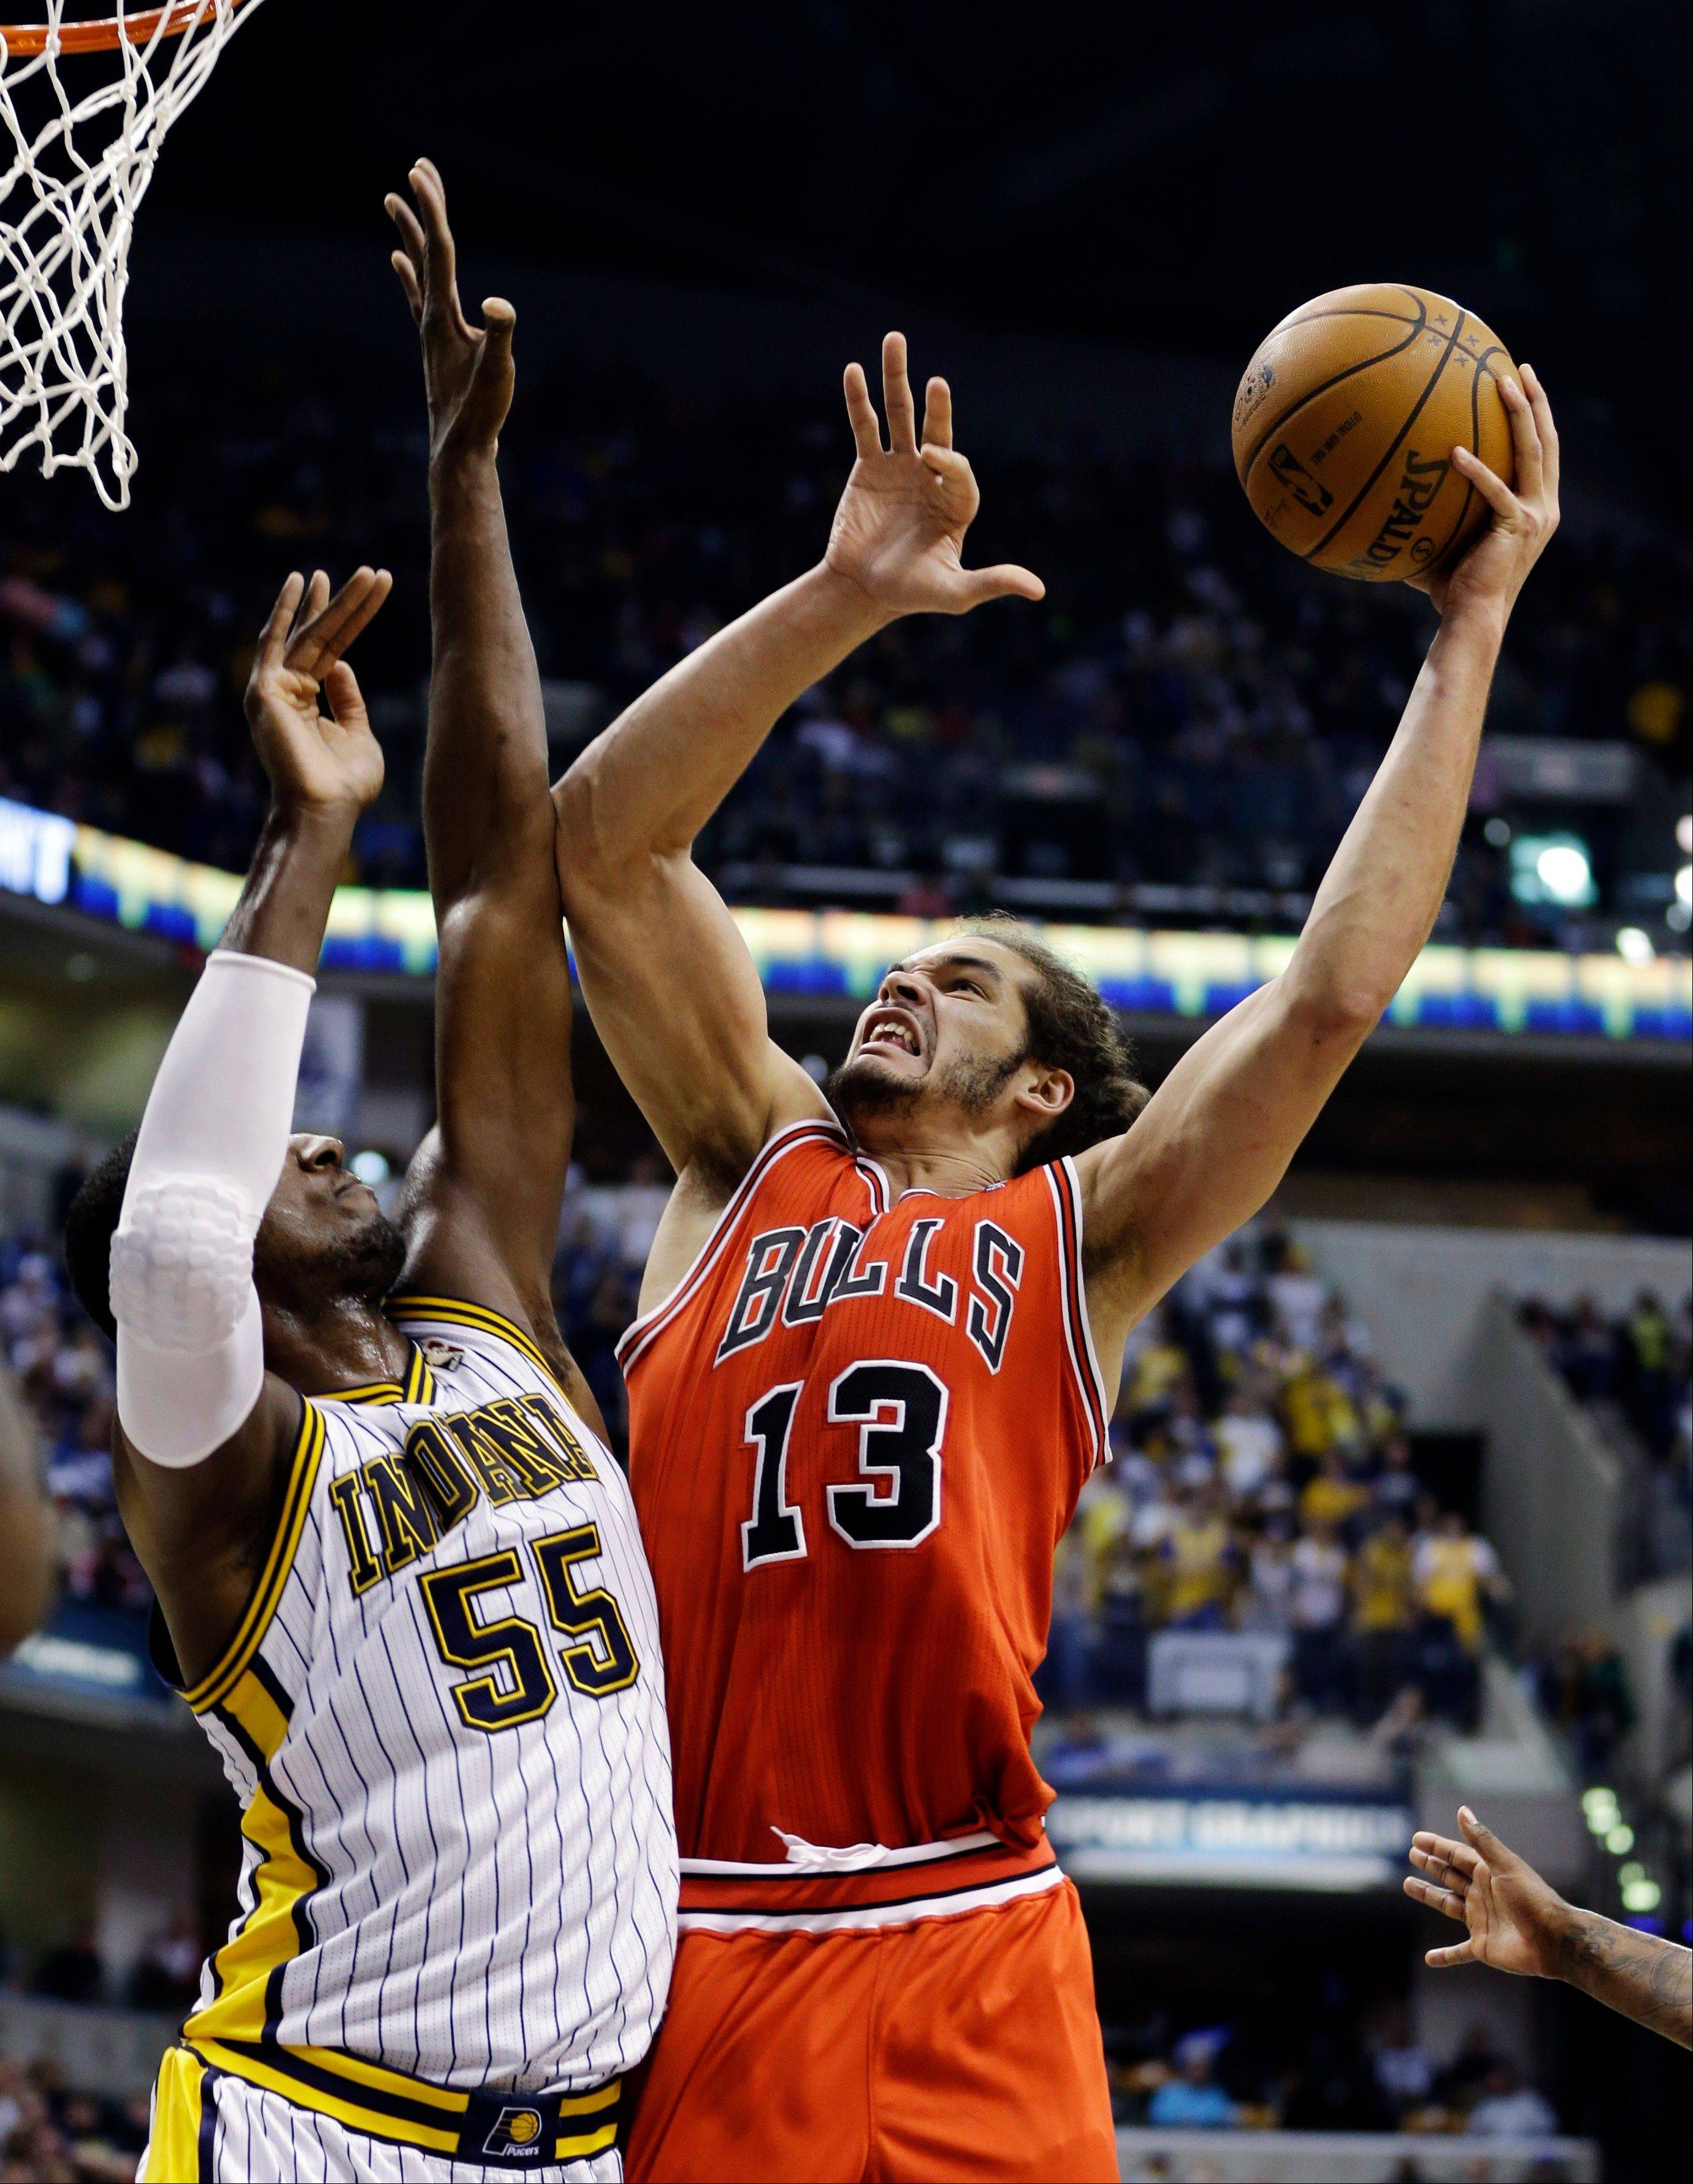 Bulls center Joakim Noah is averaging 38.3 minutes a game this season, eighth most in the league.